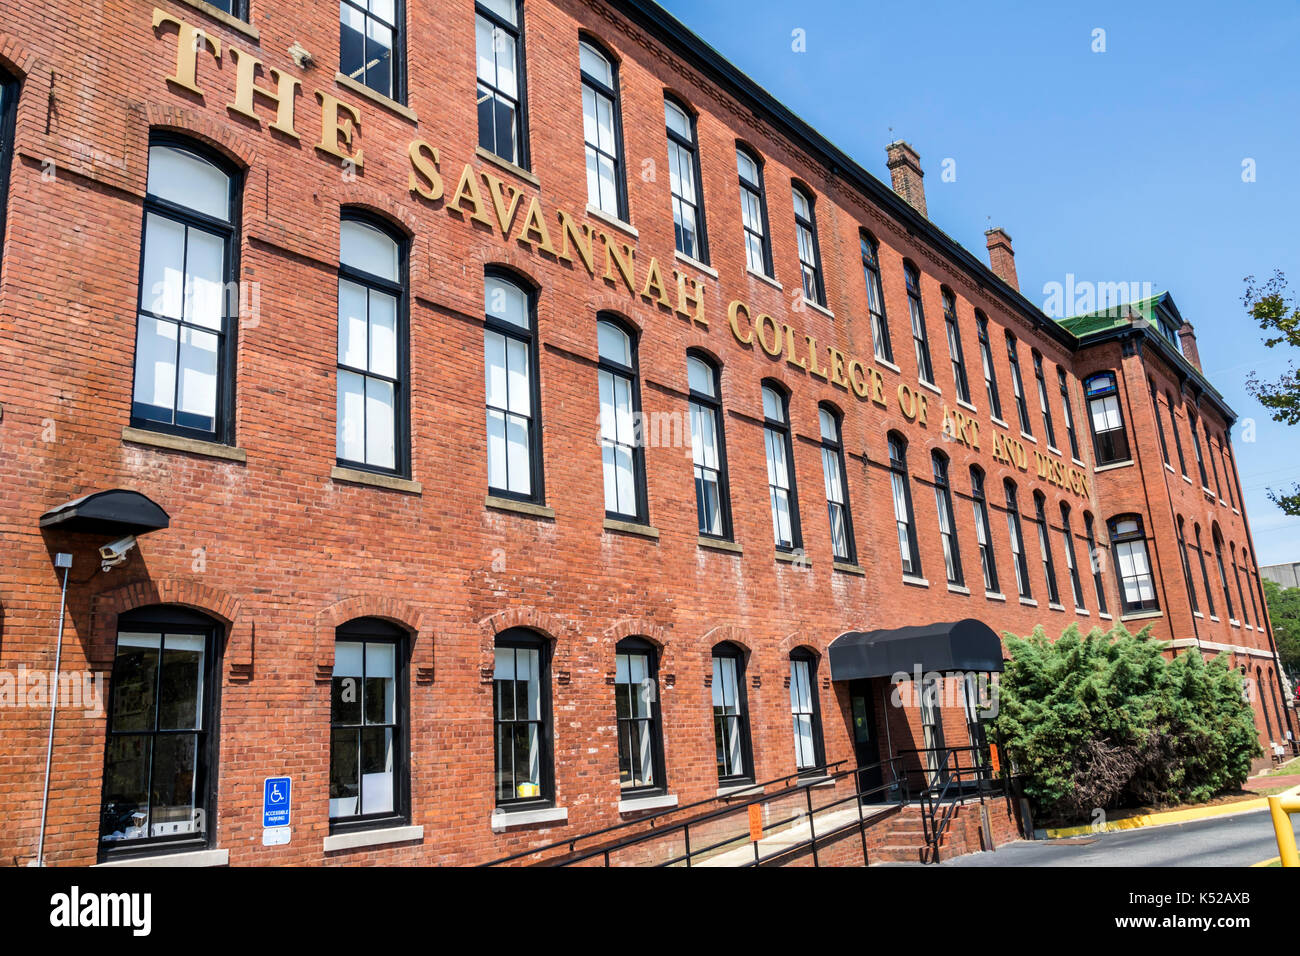 Savannah Georgia Central of Georgia State Railroad complex Savannah College of Art and Design SCAD Eichberg Hall - Stock Image